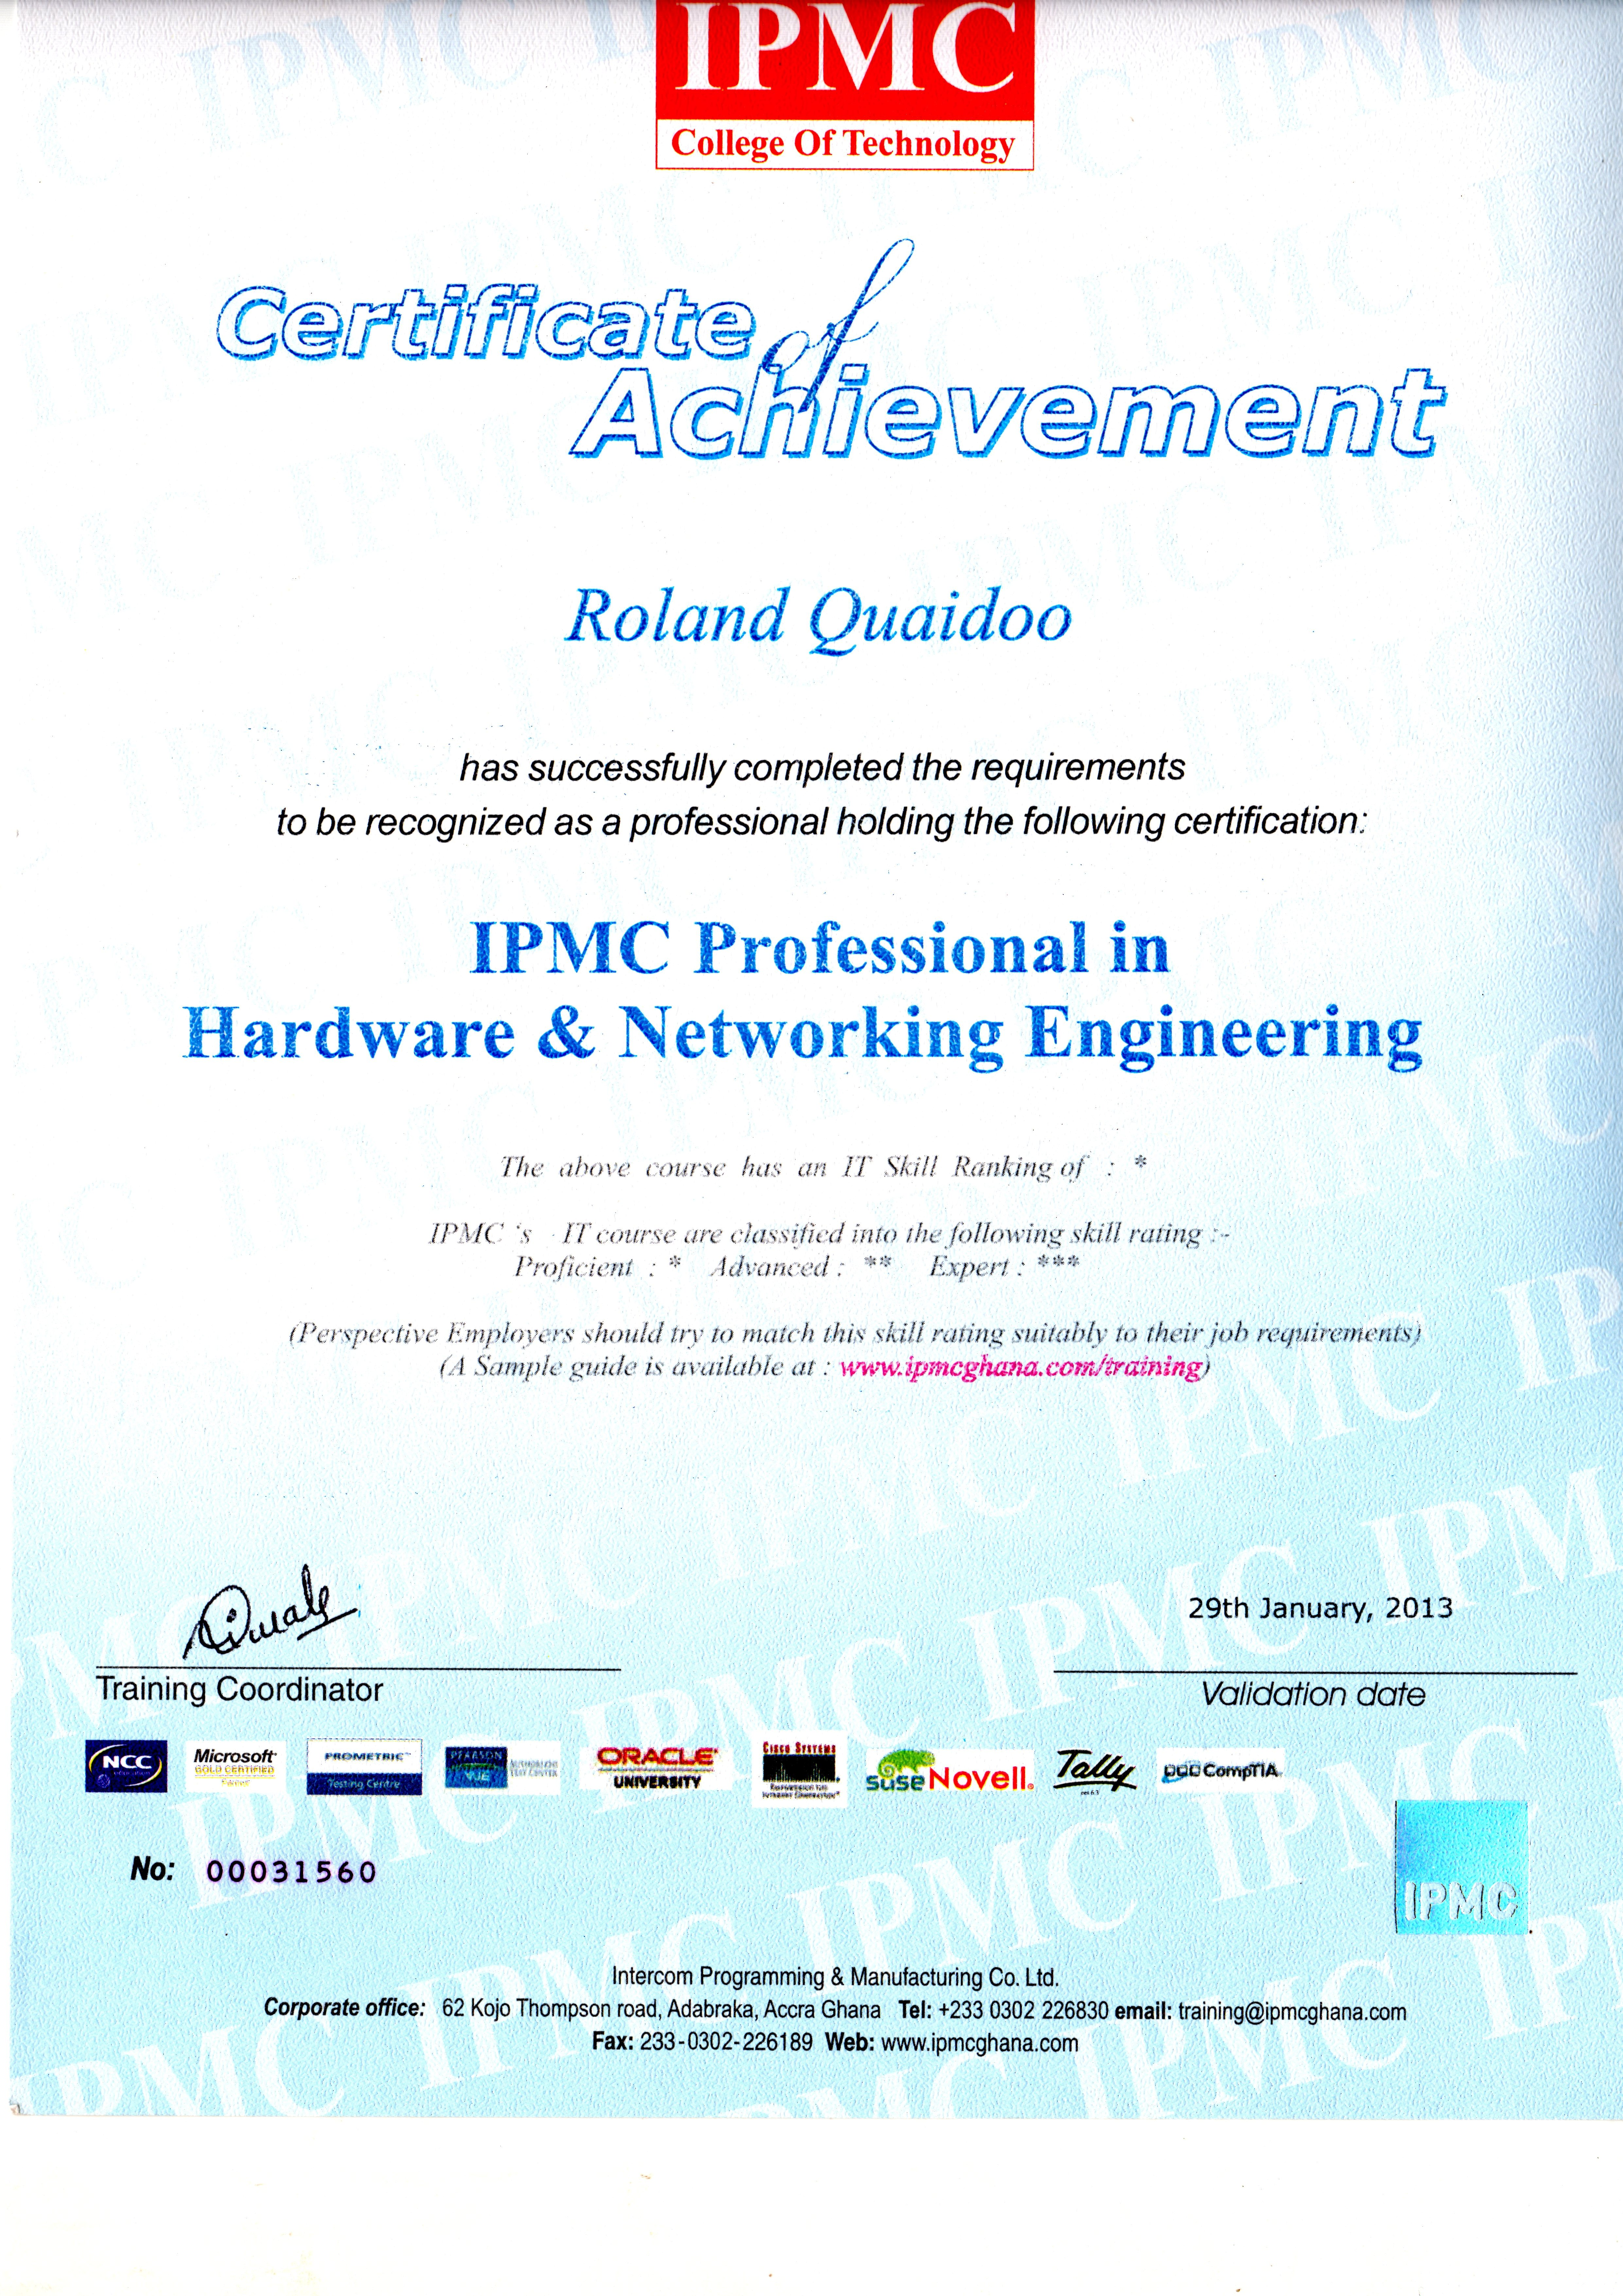 MY CERTIFICATION AS A QUALIFIED HARDWARE AND NETWORKING ENGINEER